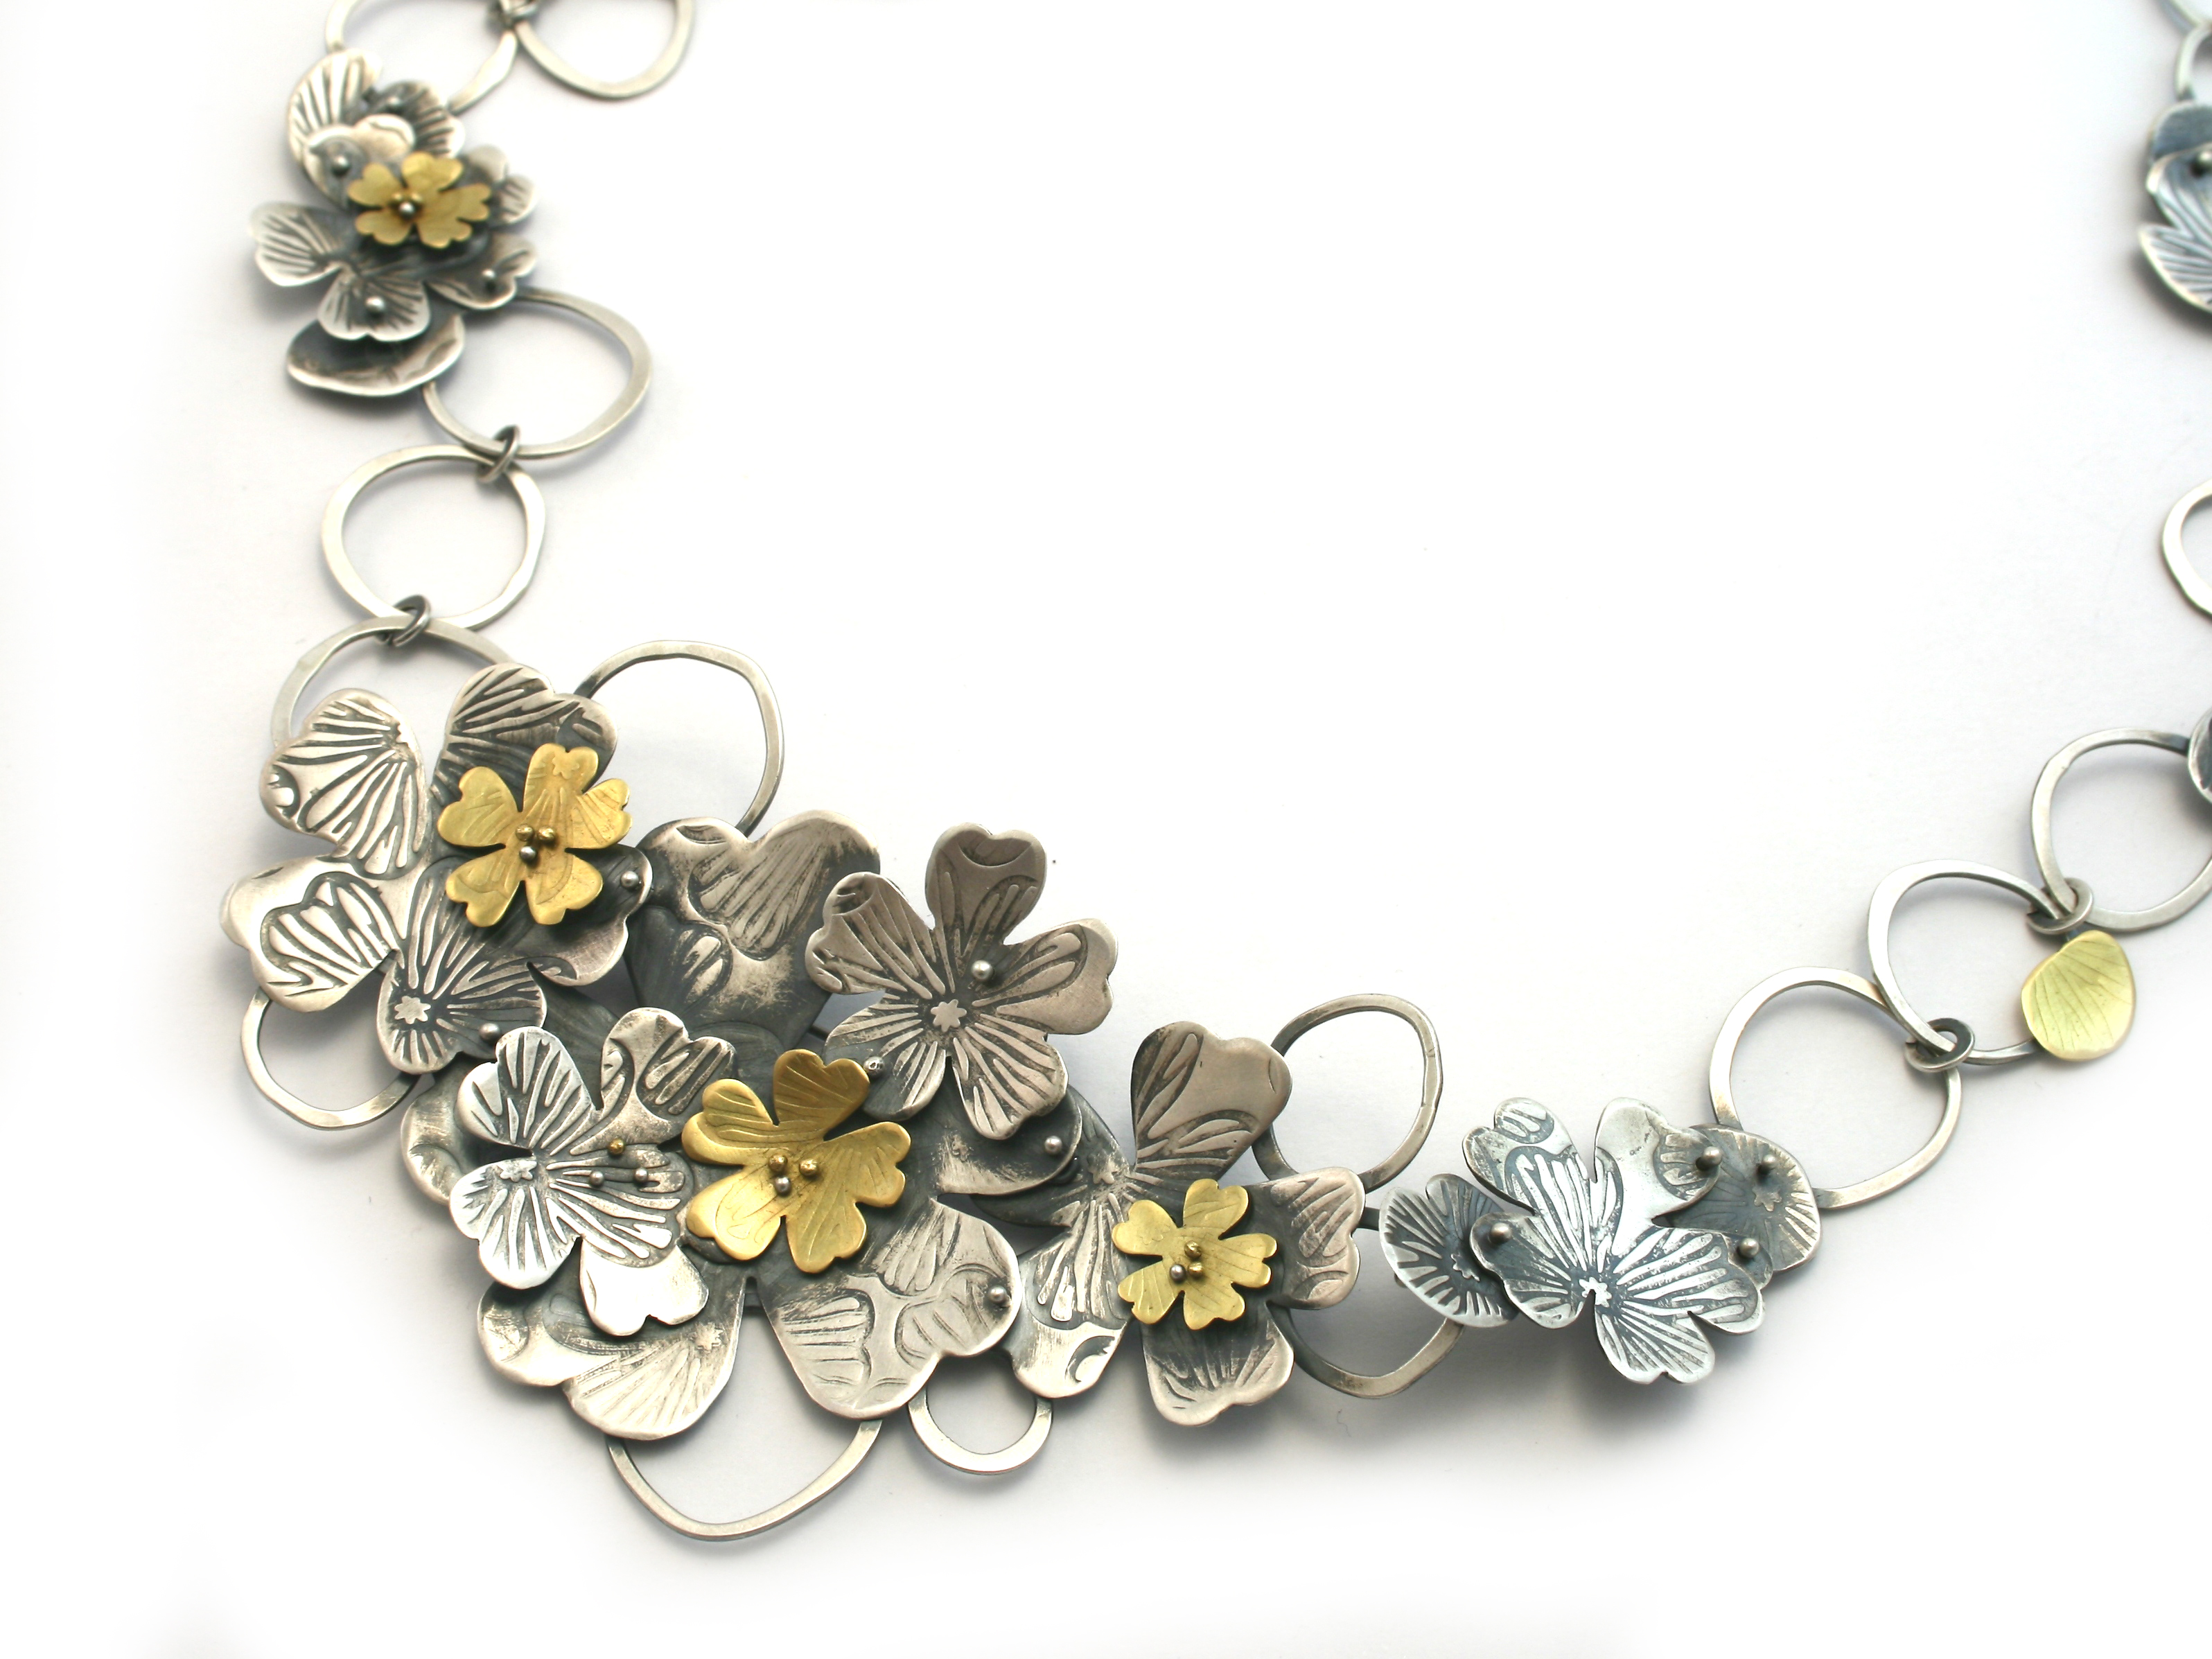 stellaris-flower-neckpiece-copy.jpg